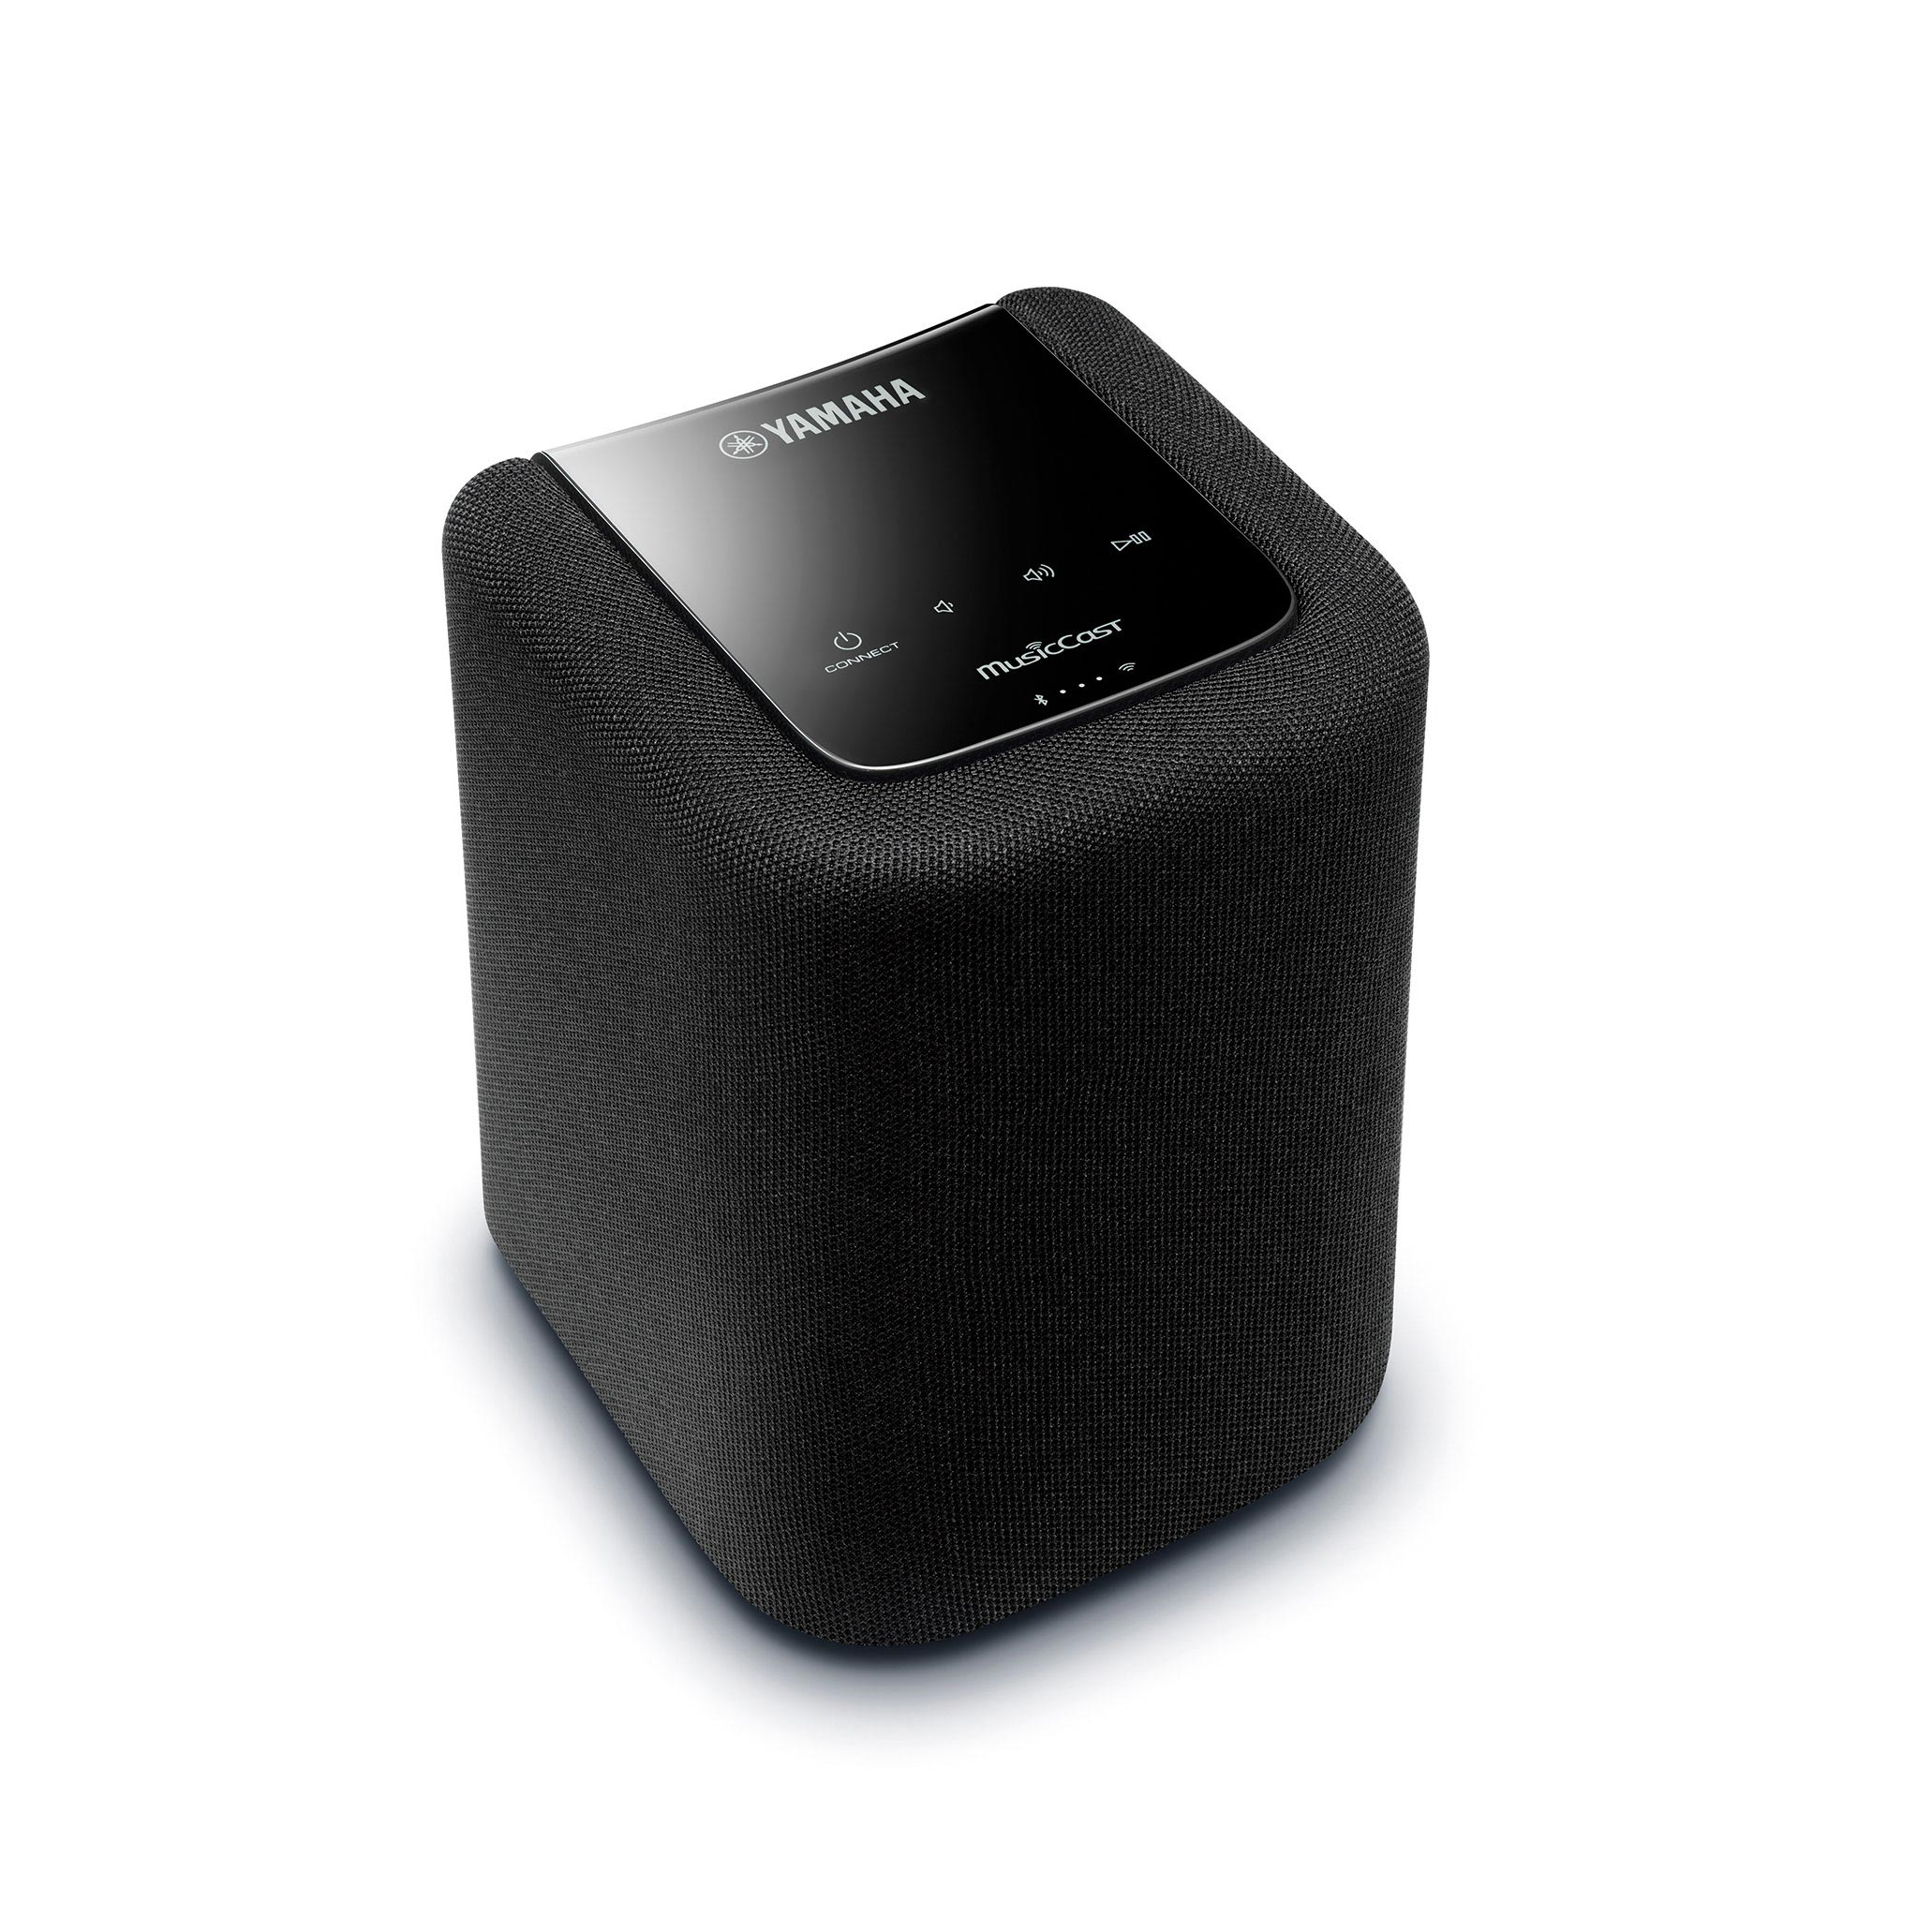 Yamaha - Enceinte Bluetooth / Wi-Fi compatible MusicCast WX010